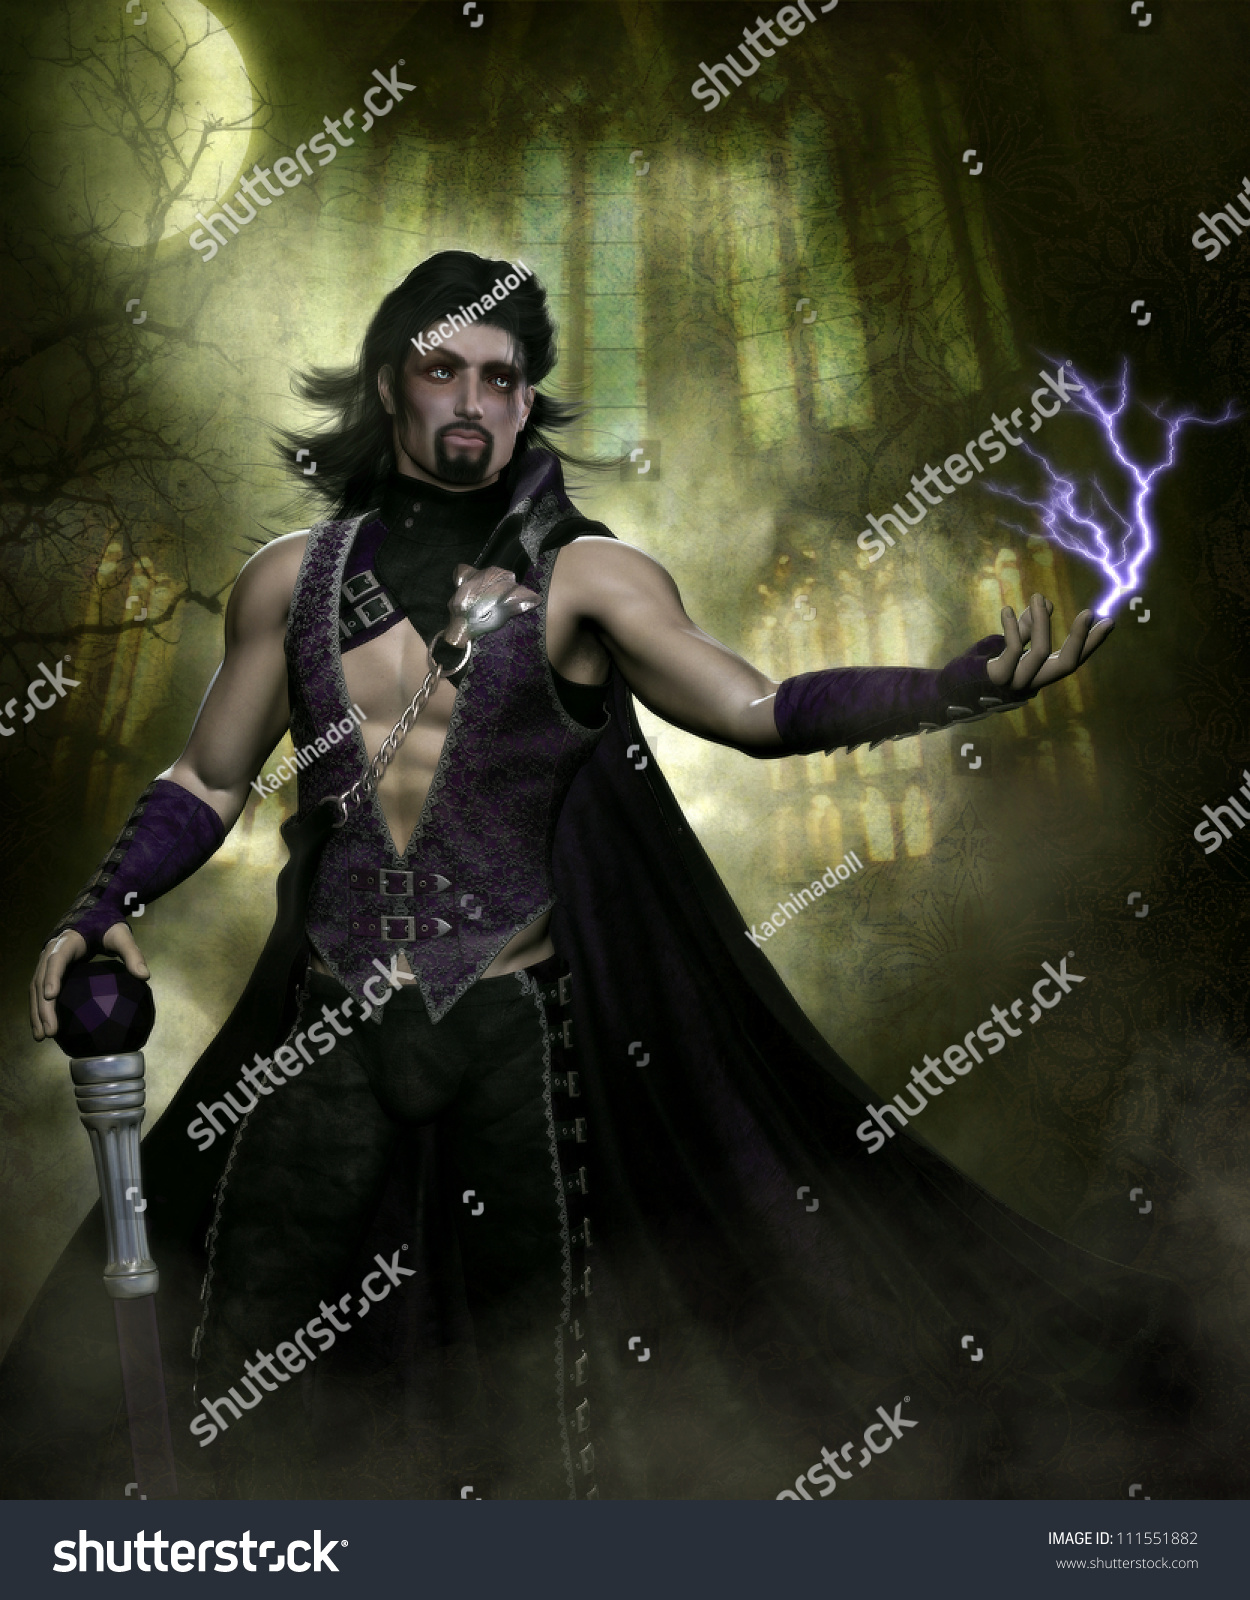 3D Sexy Game 3d illustration sexy male vampire wearing stock illustration